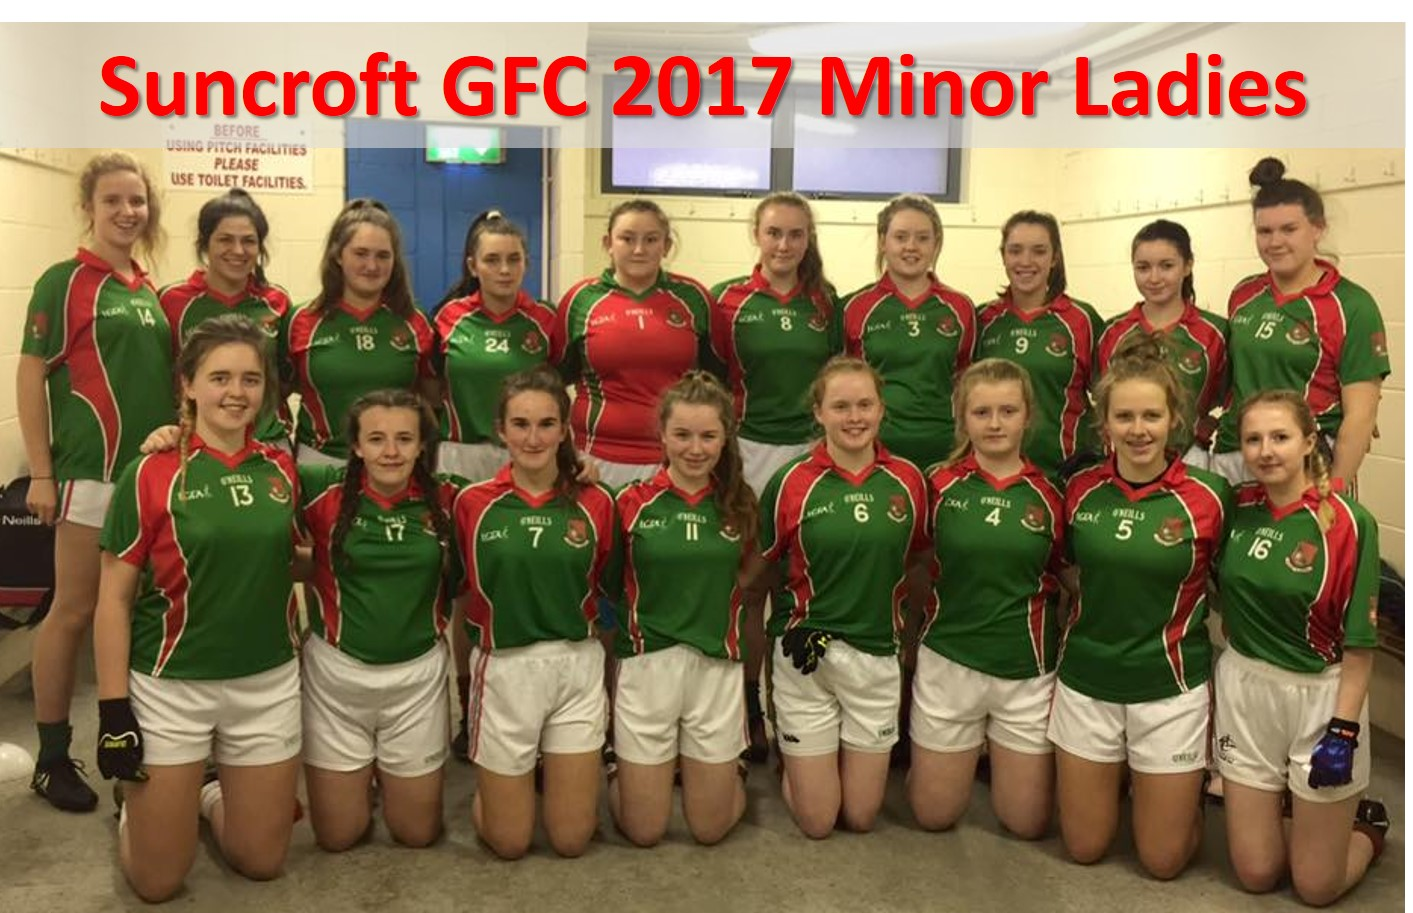 Suncroft GFC 2017 Minor Ladies